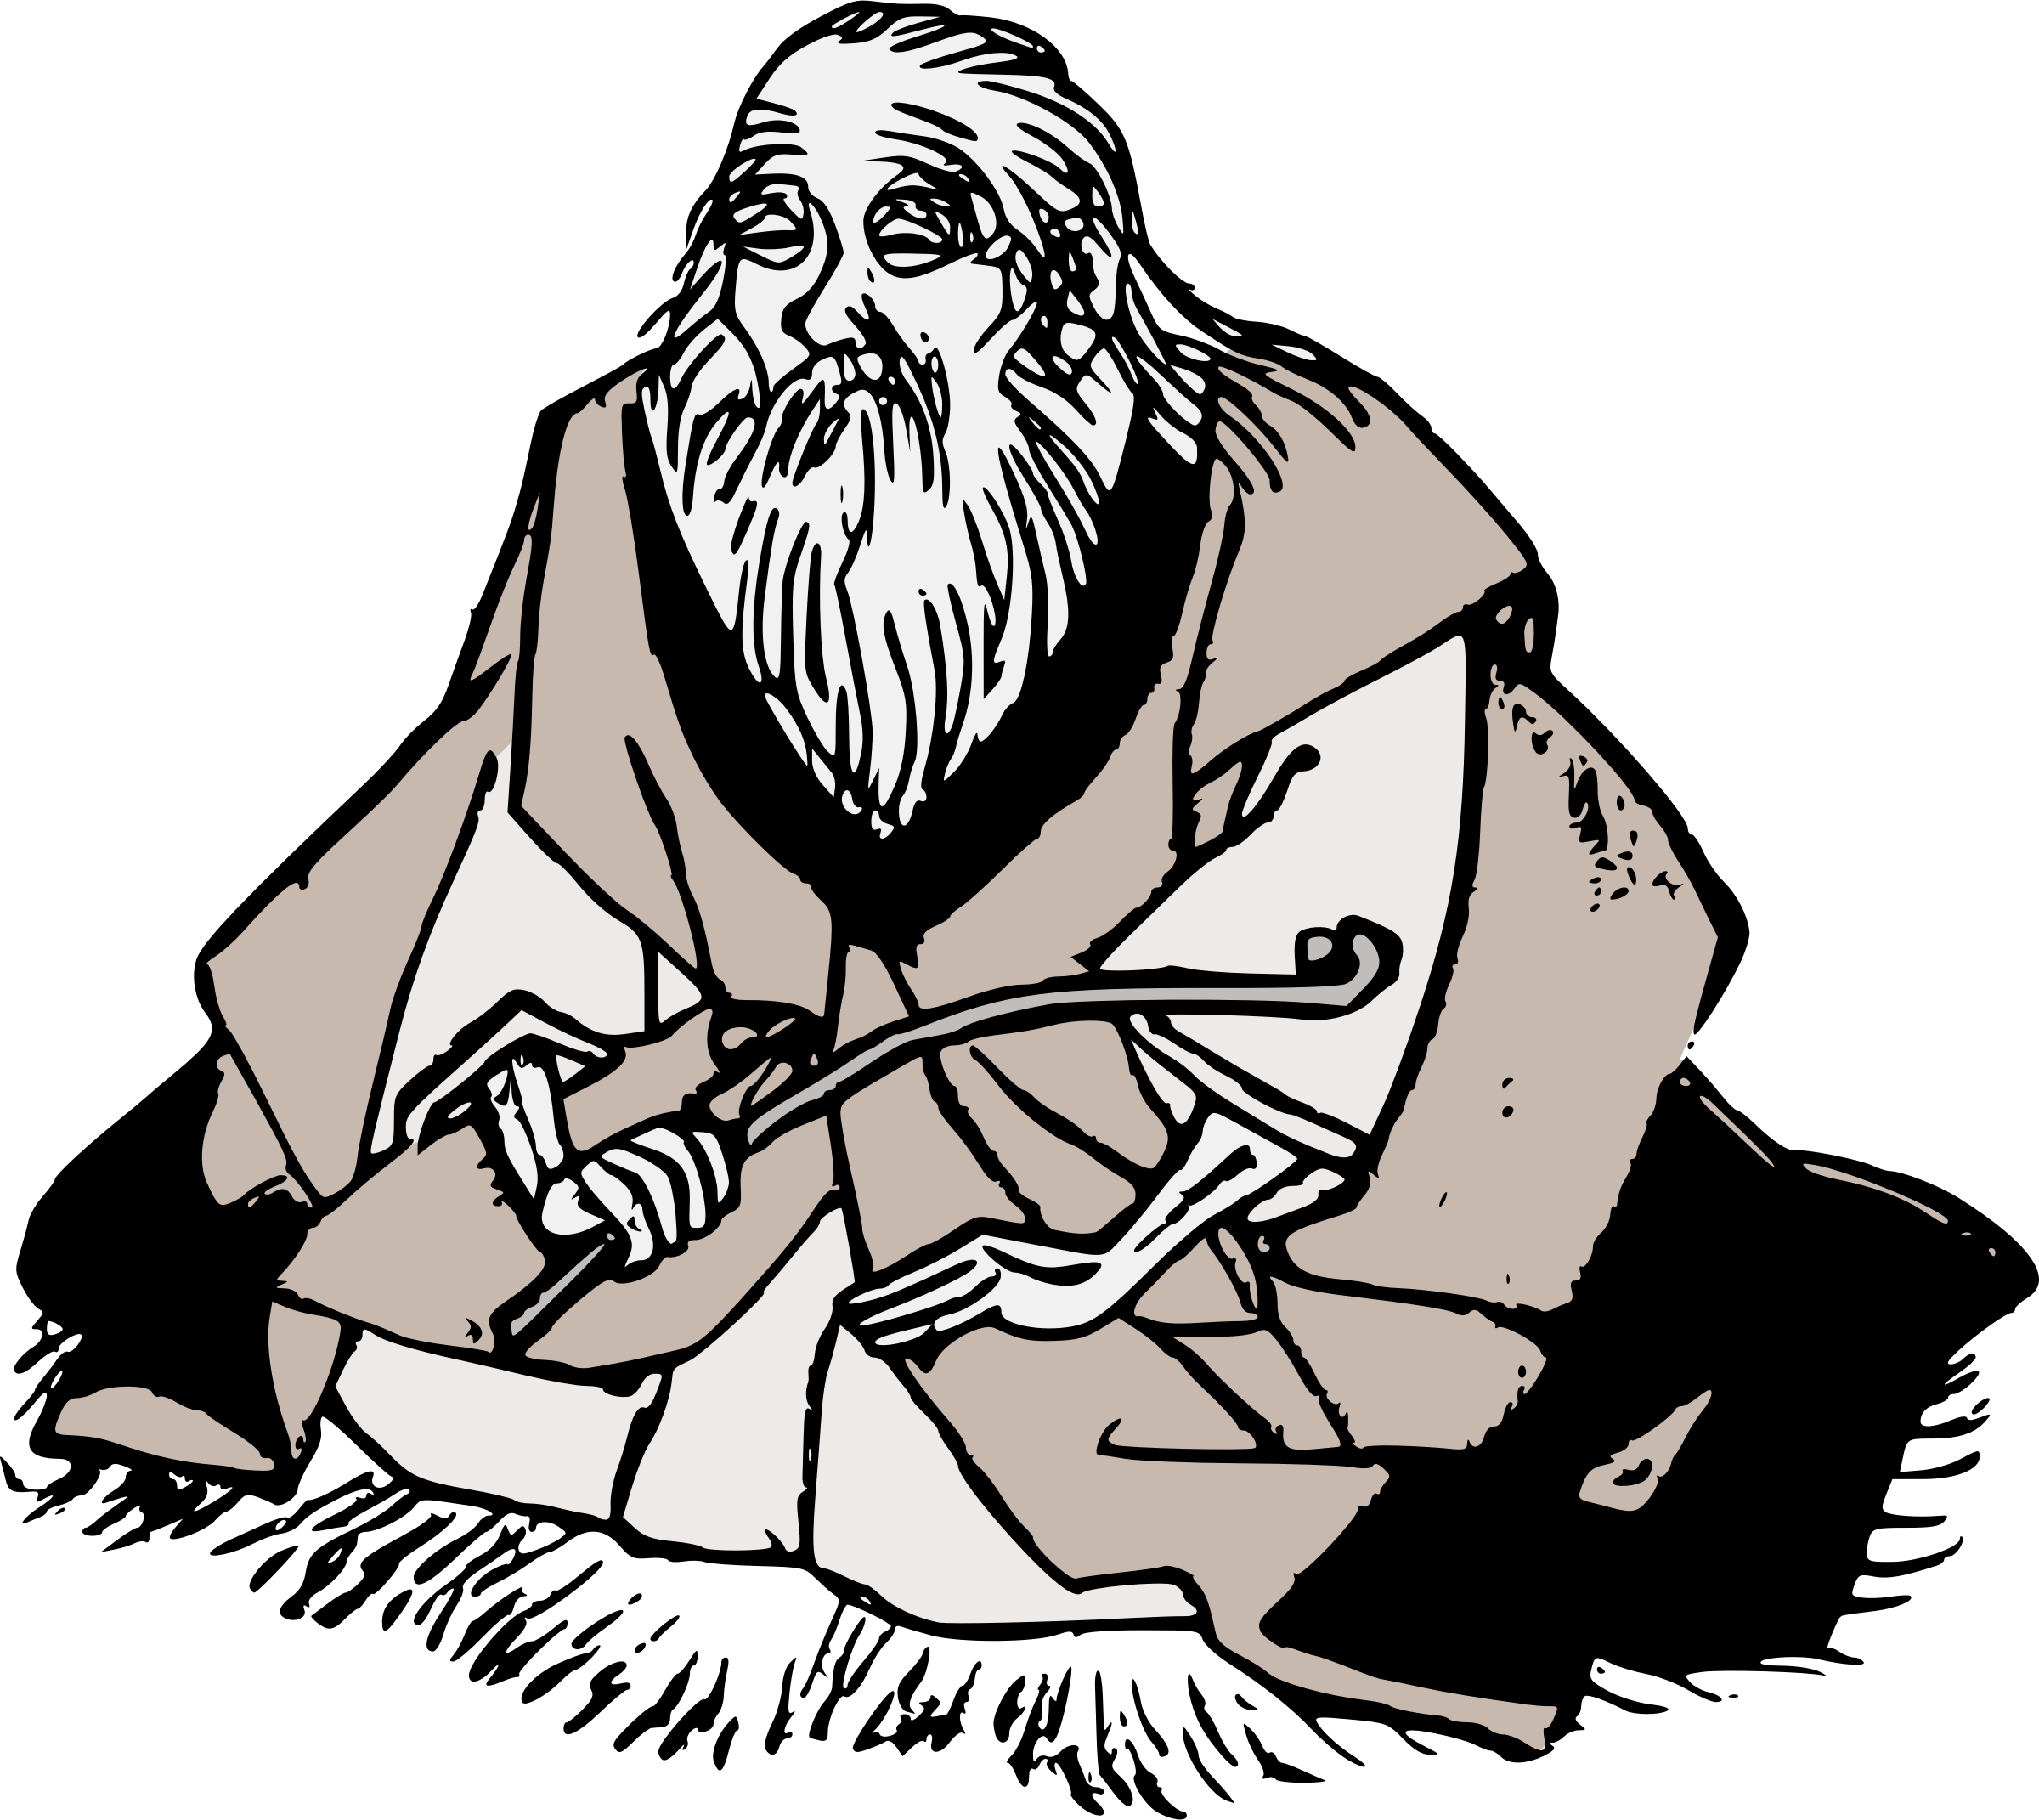 Wise - Wise Man HD PNG